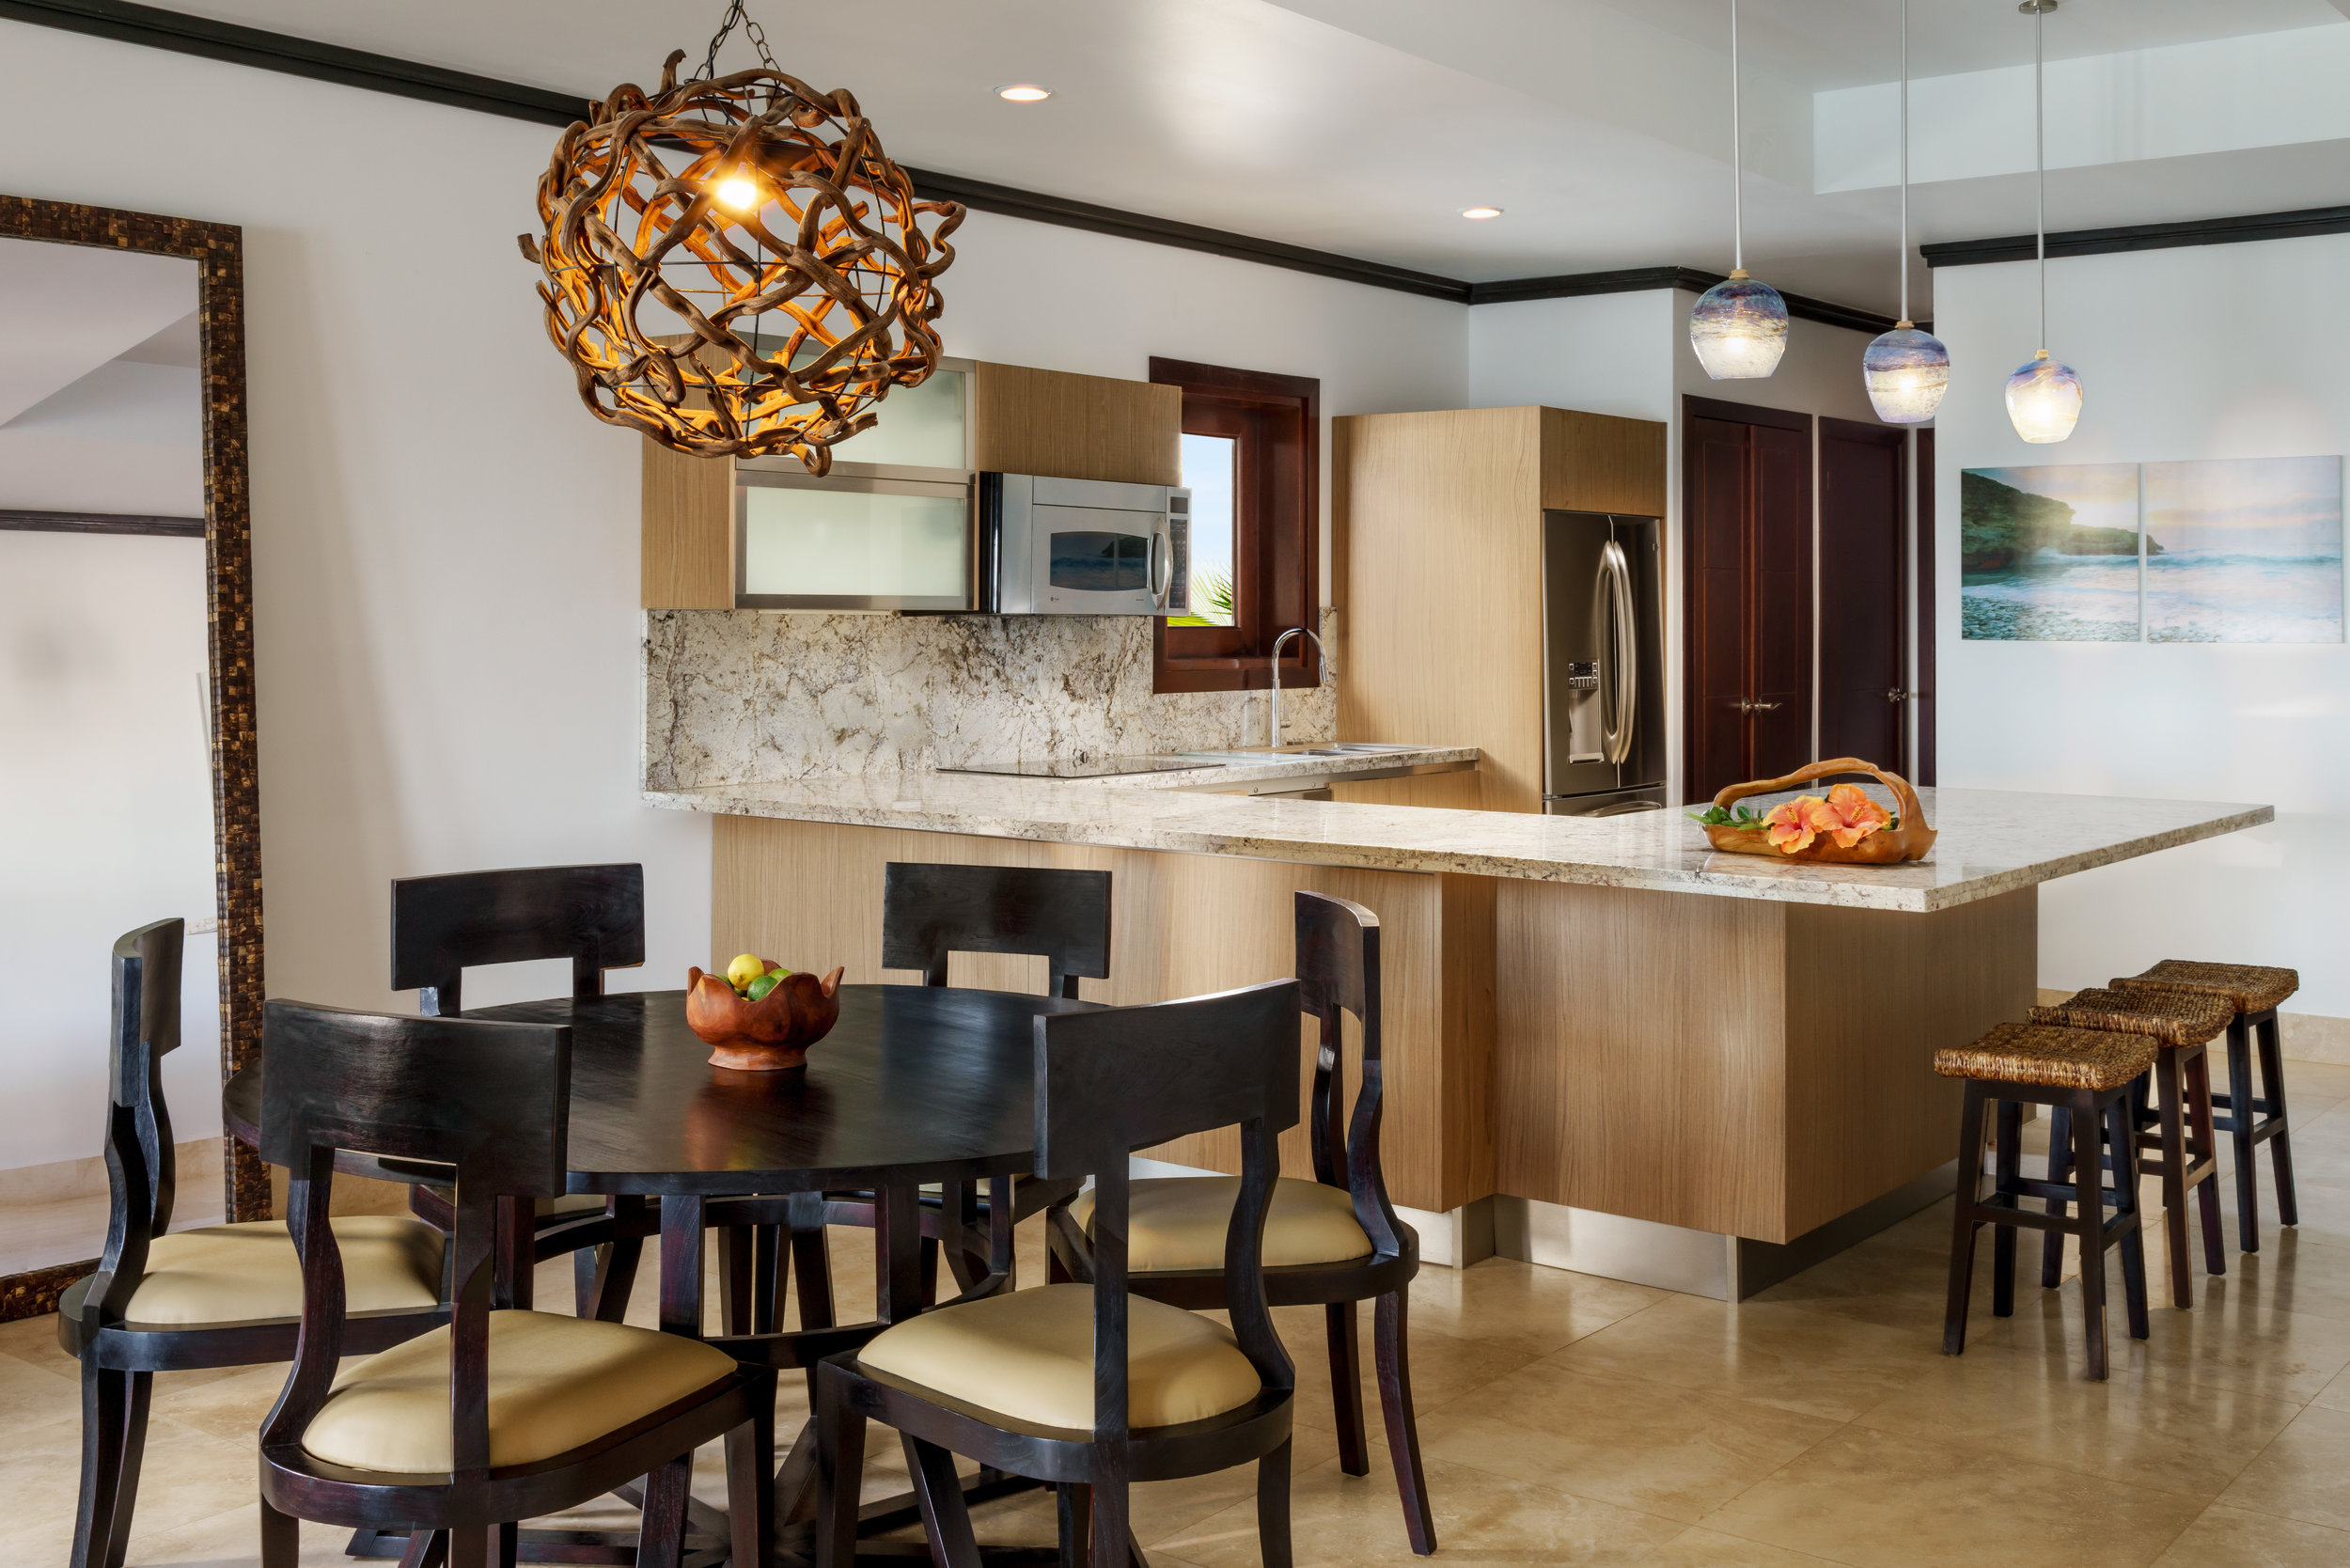 20151026_Zemi_bldg1_2bd_Kitchen.jpg